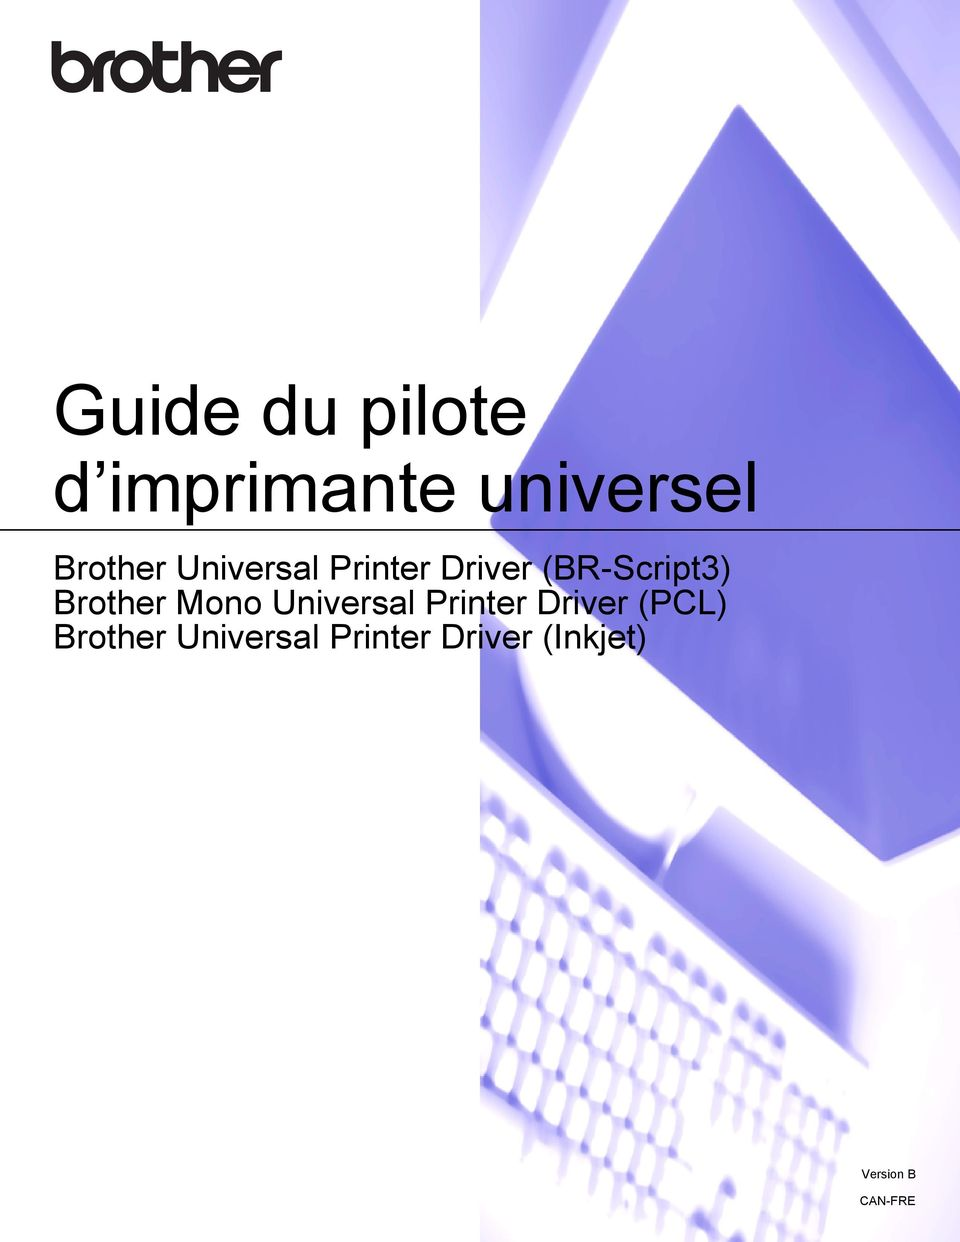 Mono Universal Printer Driver (PCL) Brother